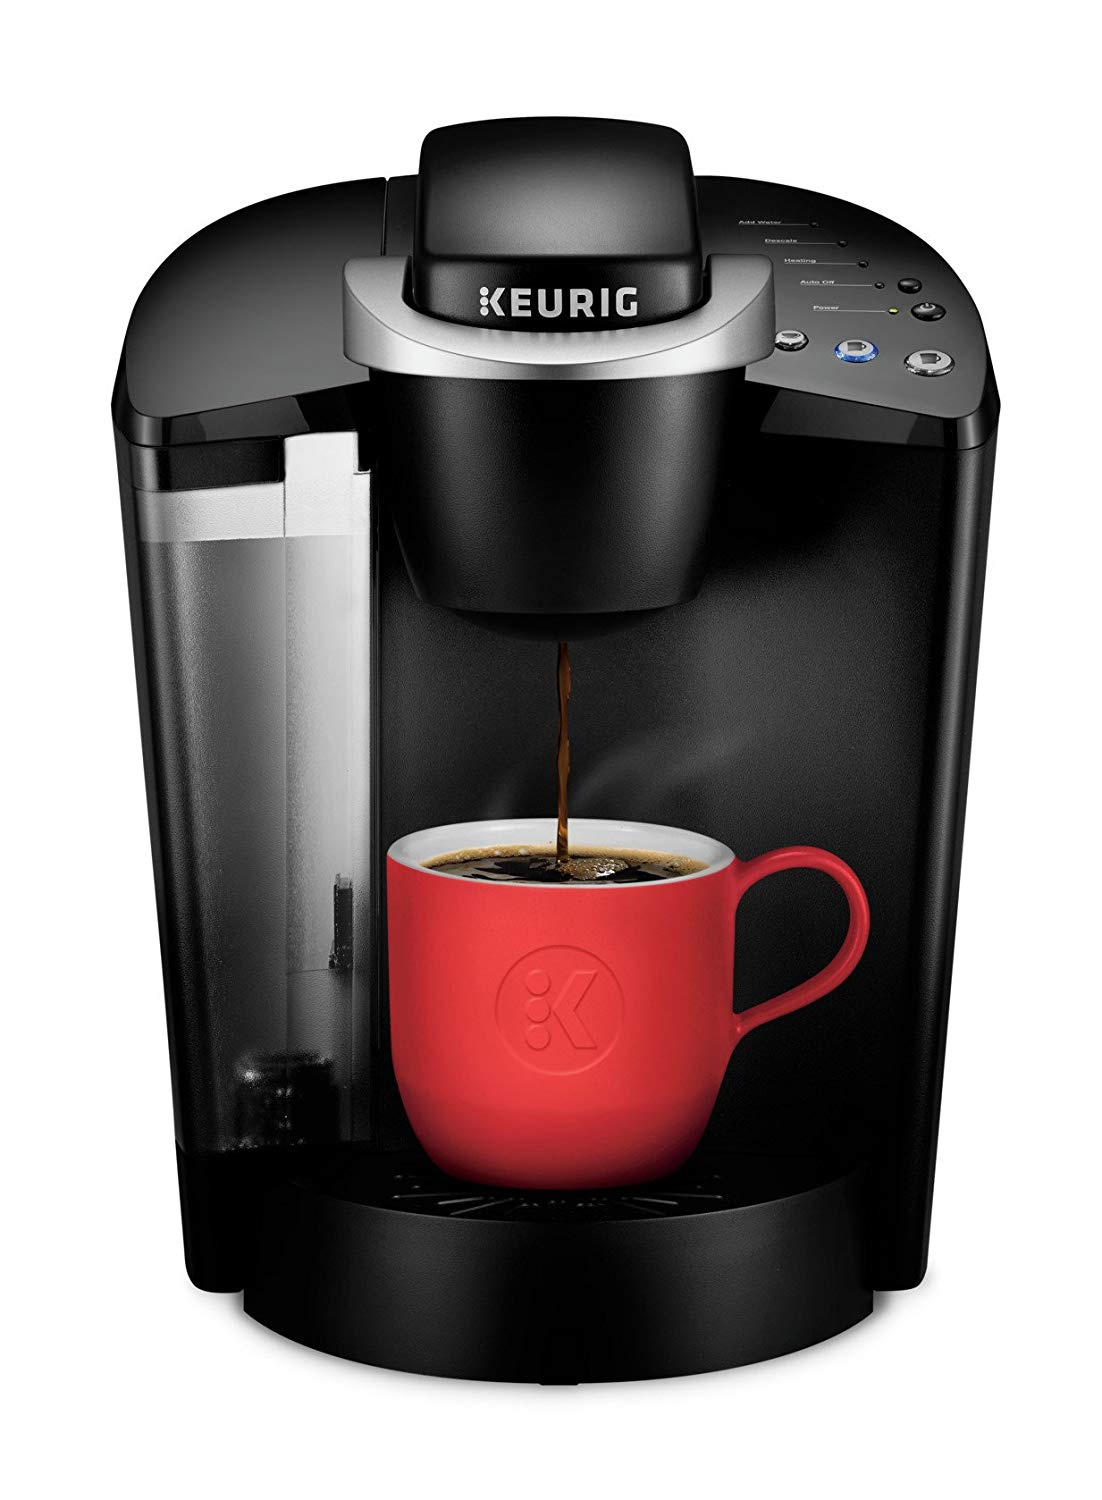 keurig coffee pot for great tasting single serve coffee